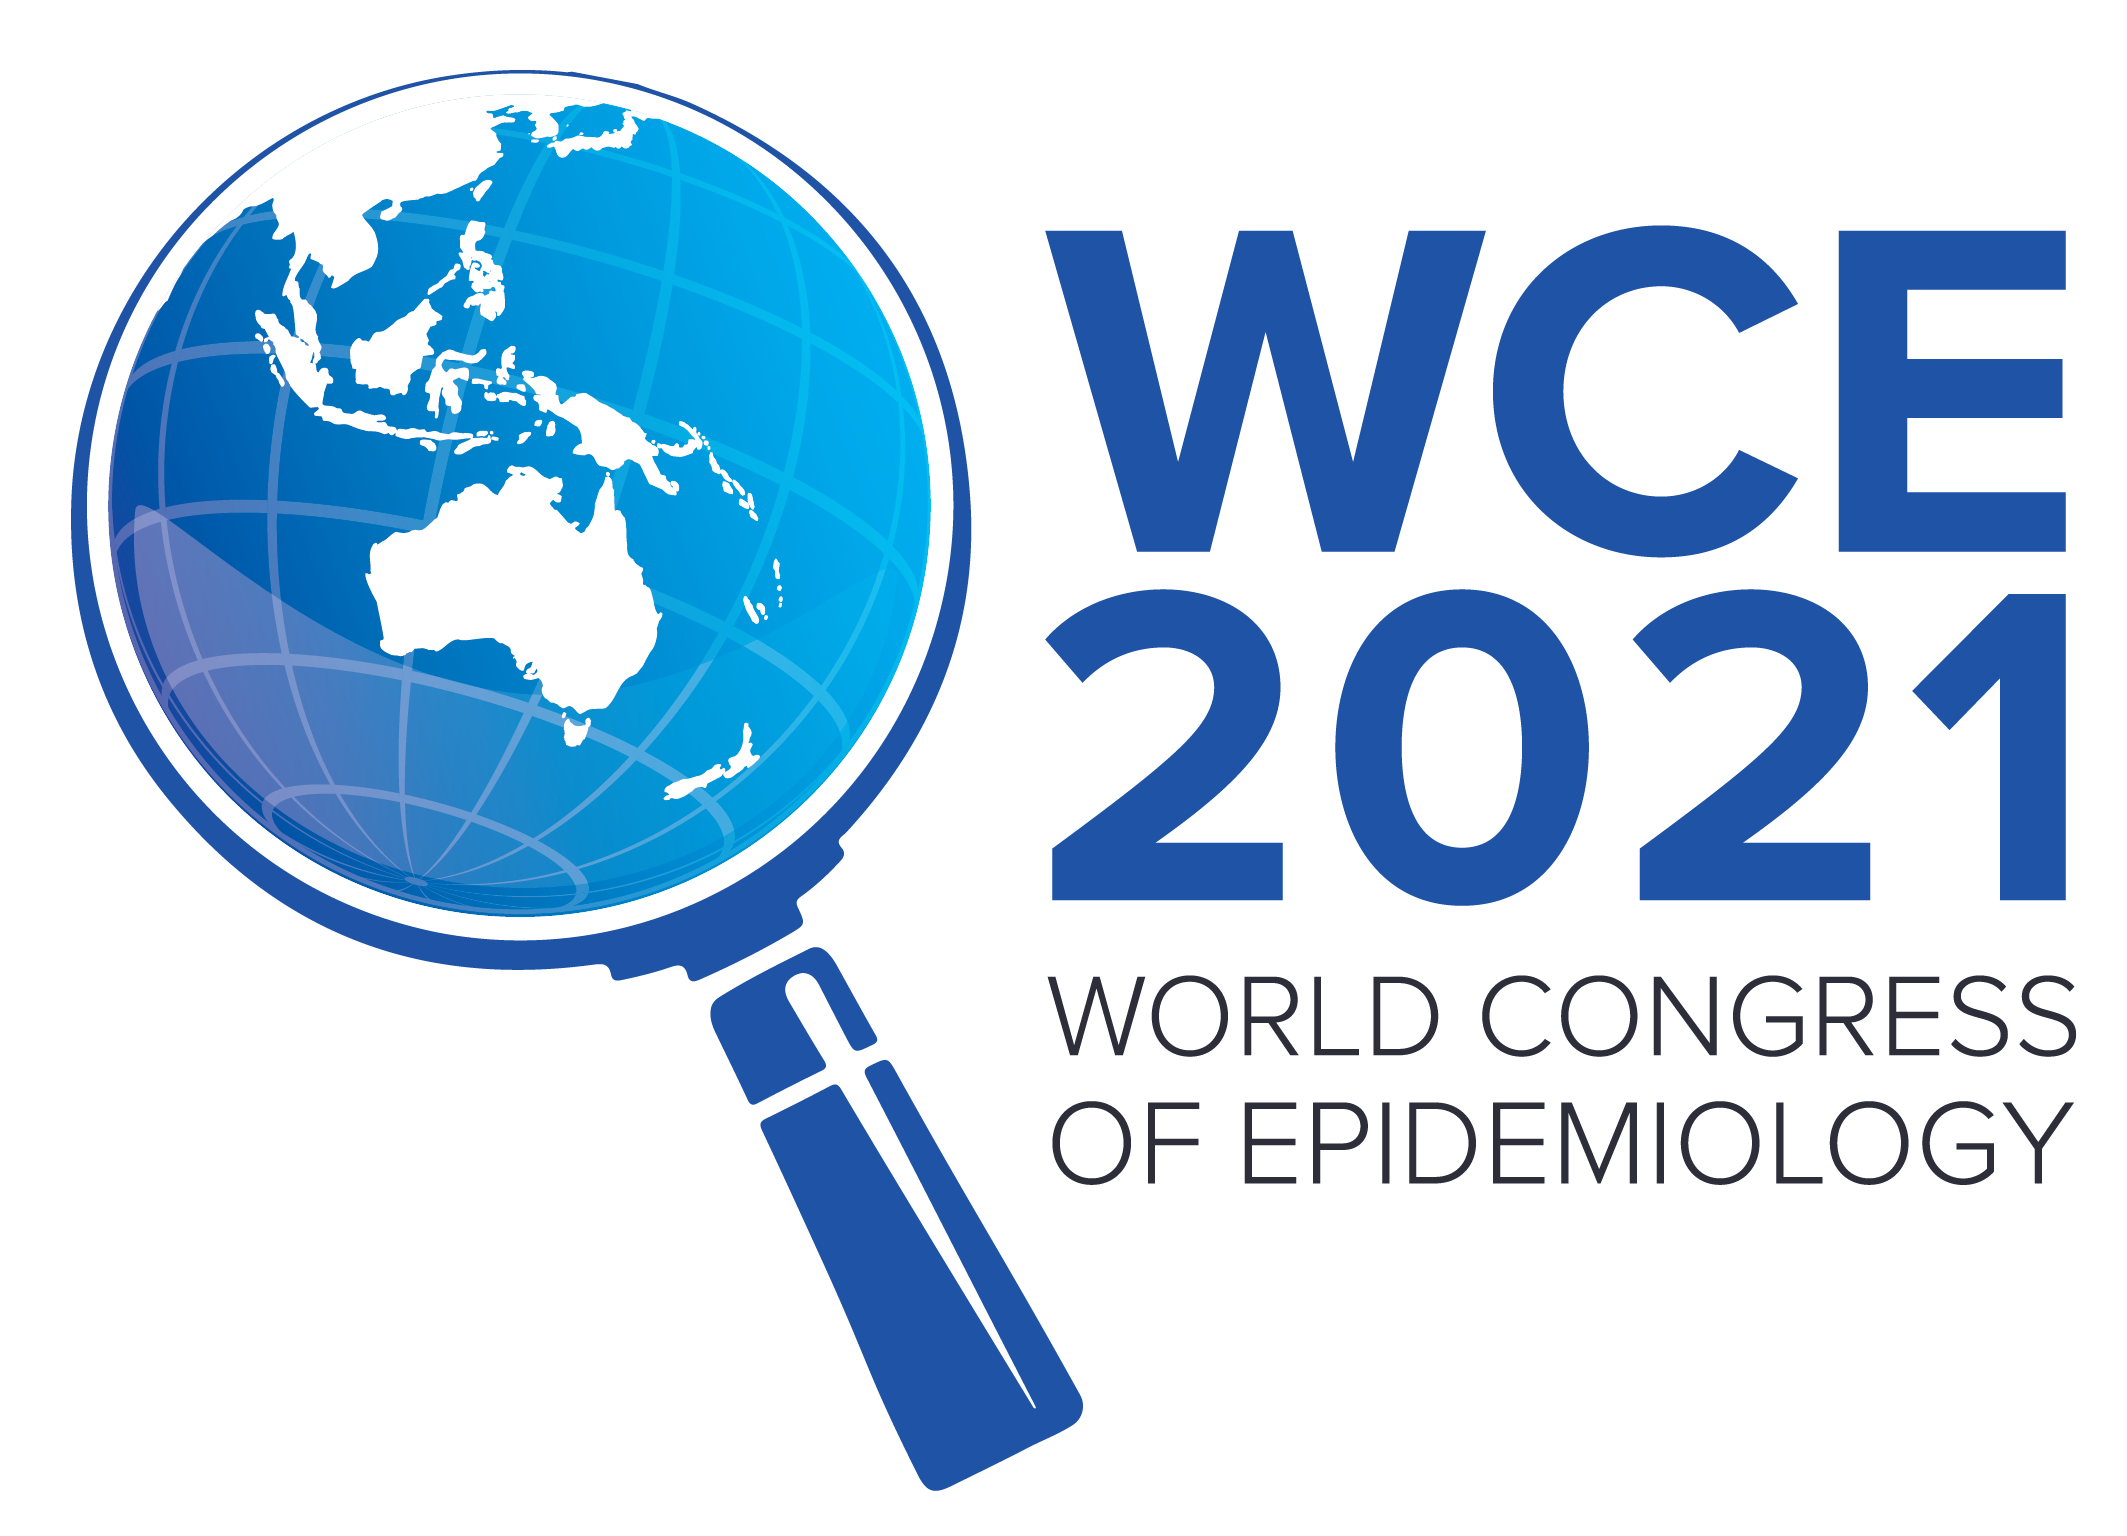 World Congress of Epidemology logo